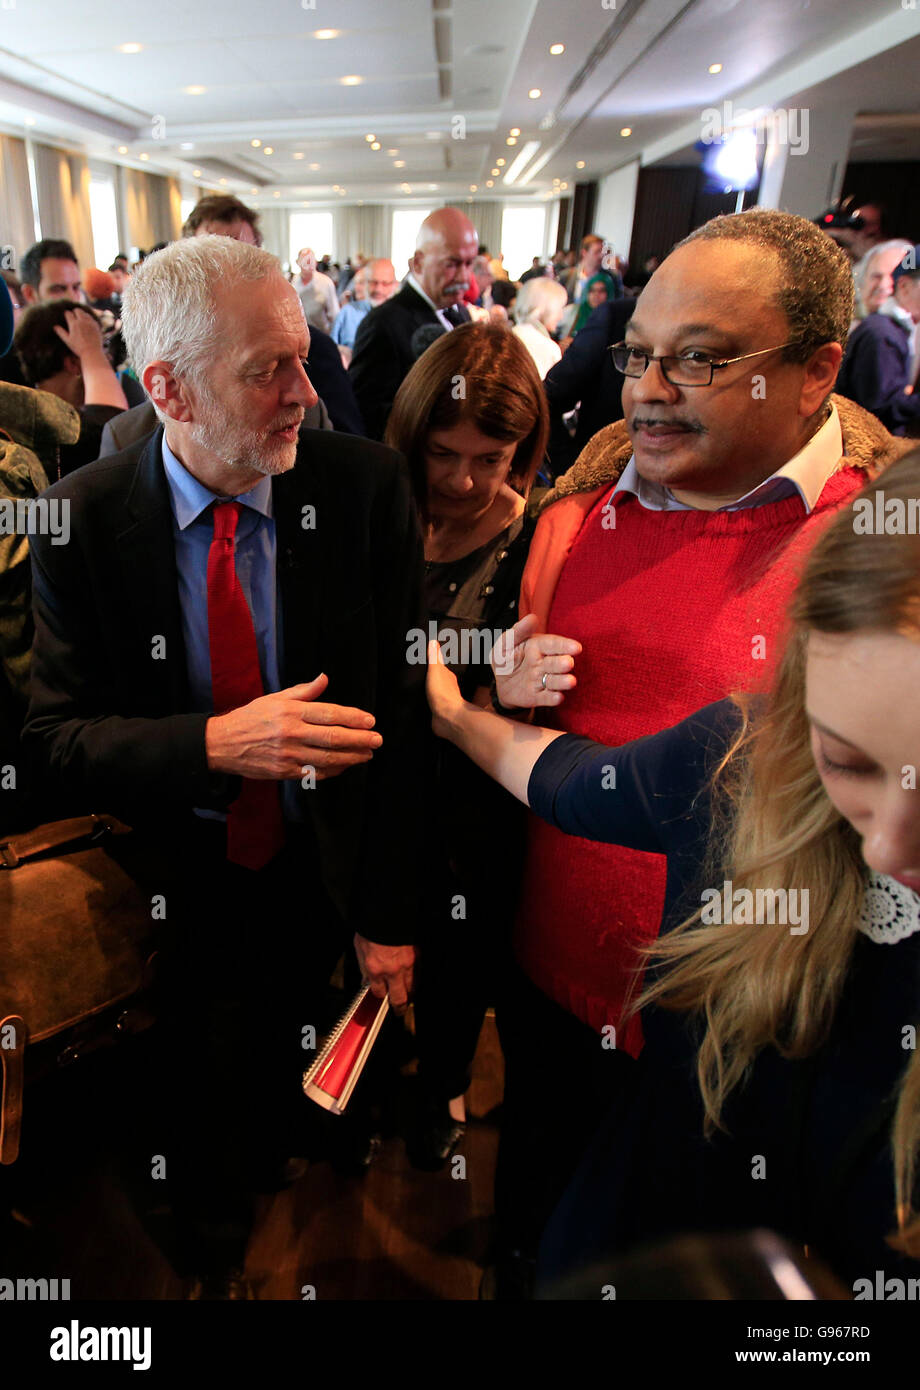 Labour Leader Jeremy Corbyn with Marc Wadsworth (right), who runs Momentum Black Connexions, following a speech - Stock Image